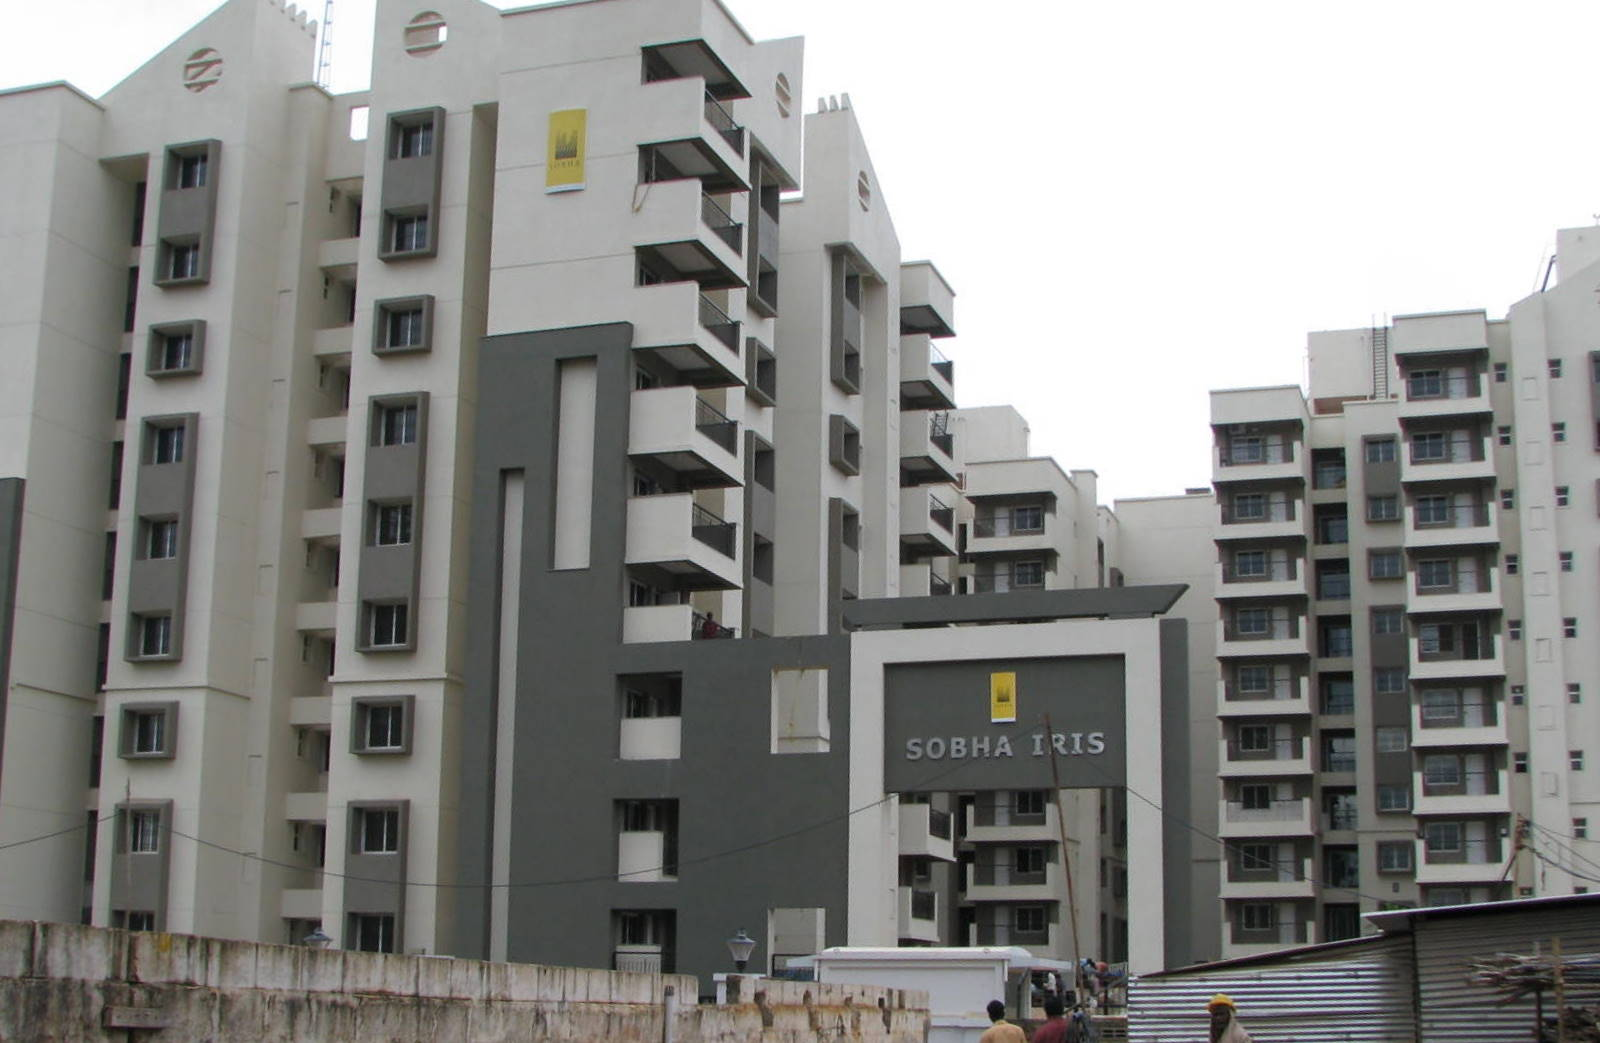 file:sobha iris apartments outer ring road bangalore 11-22-2008 2